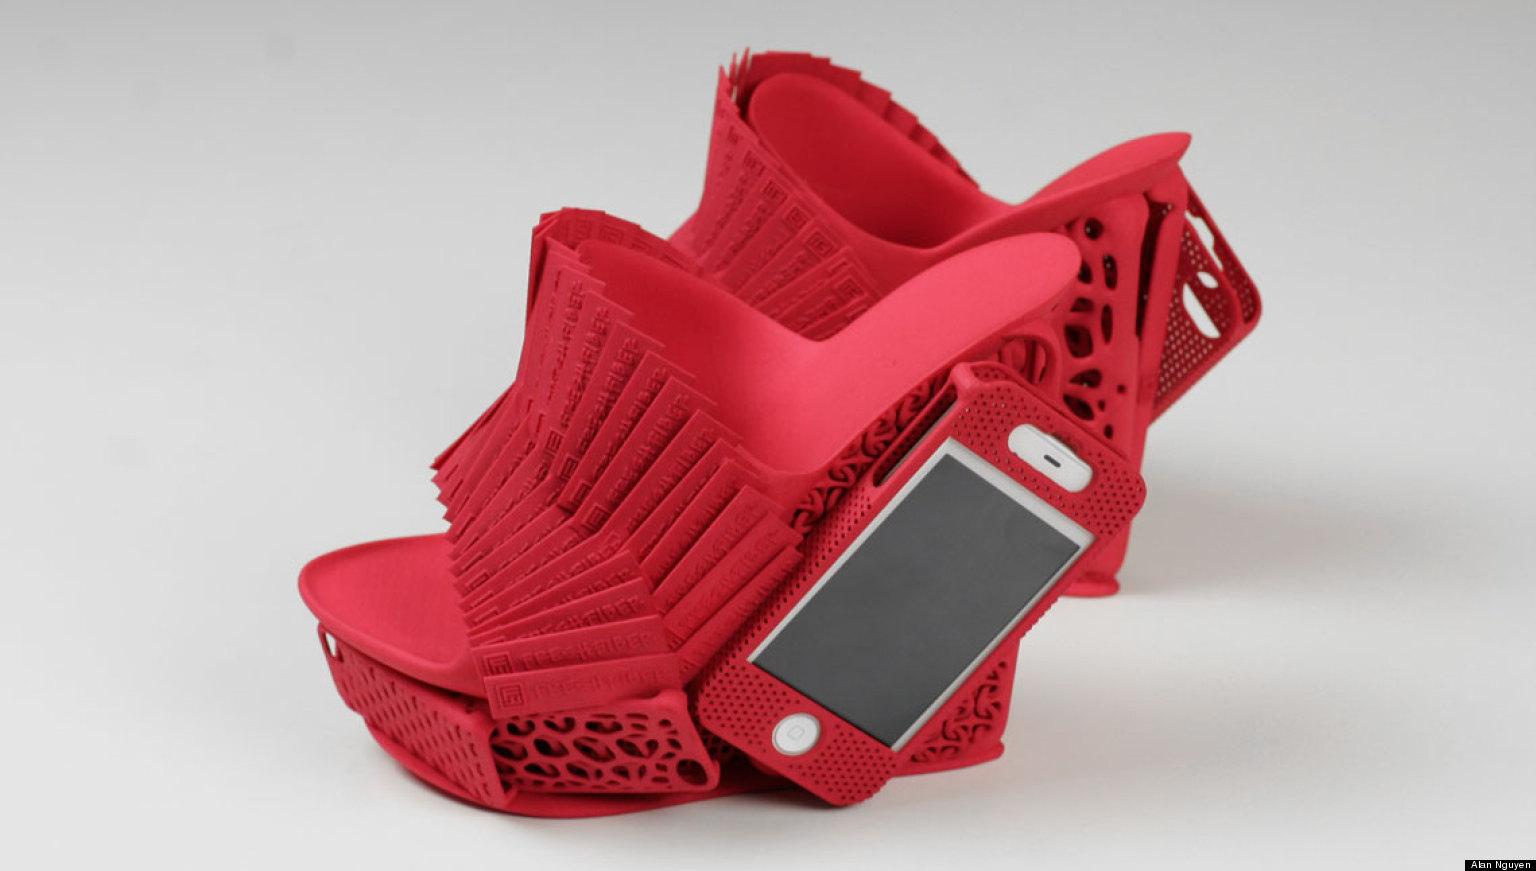 3d printed iphone holder shoes are the footwear of choice for 3d printer layouts